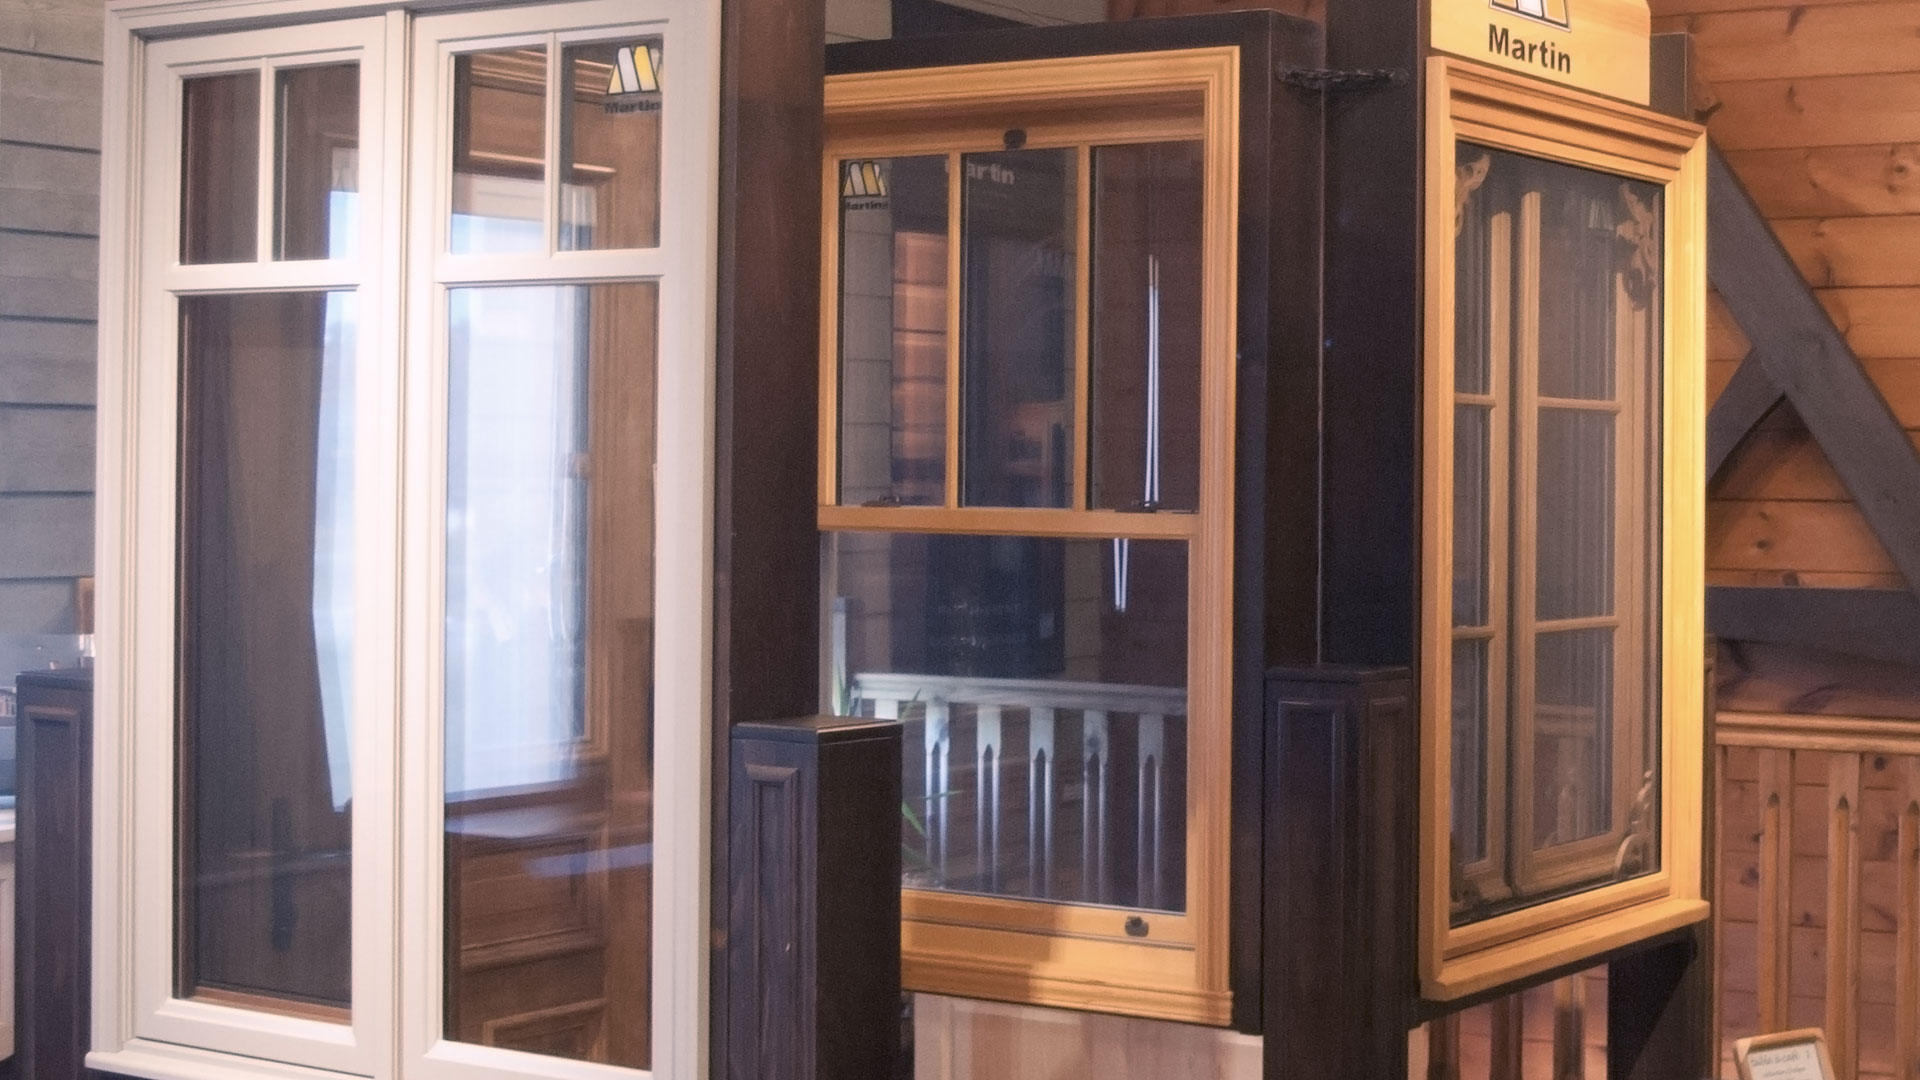 Doors and windows pro pin the pine wood specialist close eventelaan Gallery